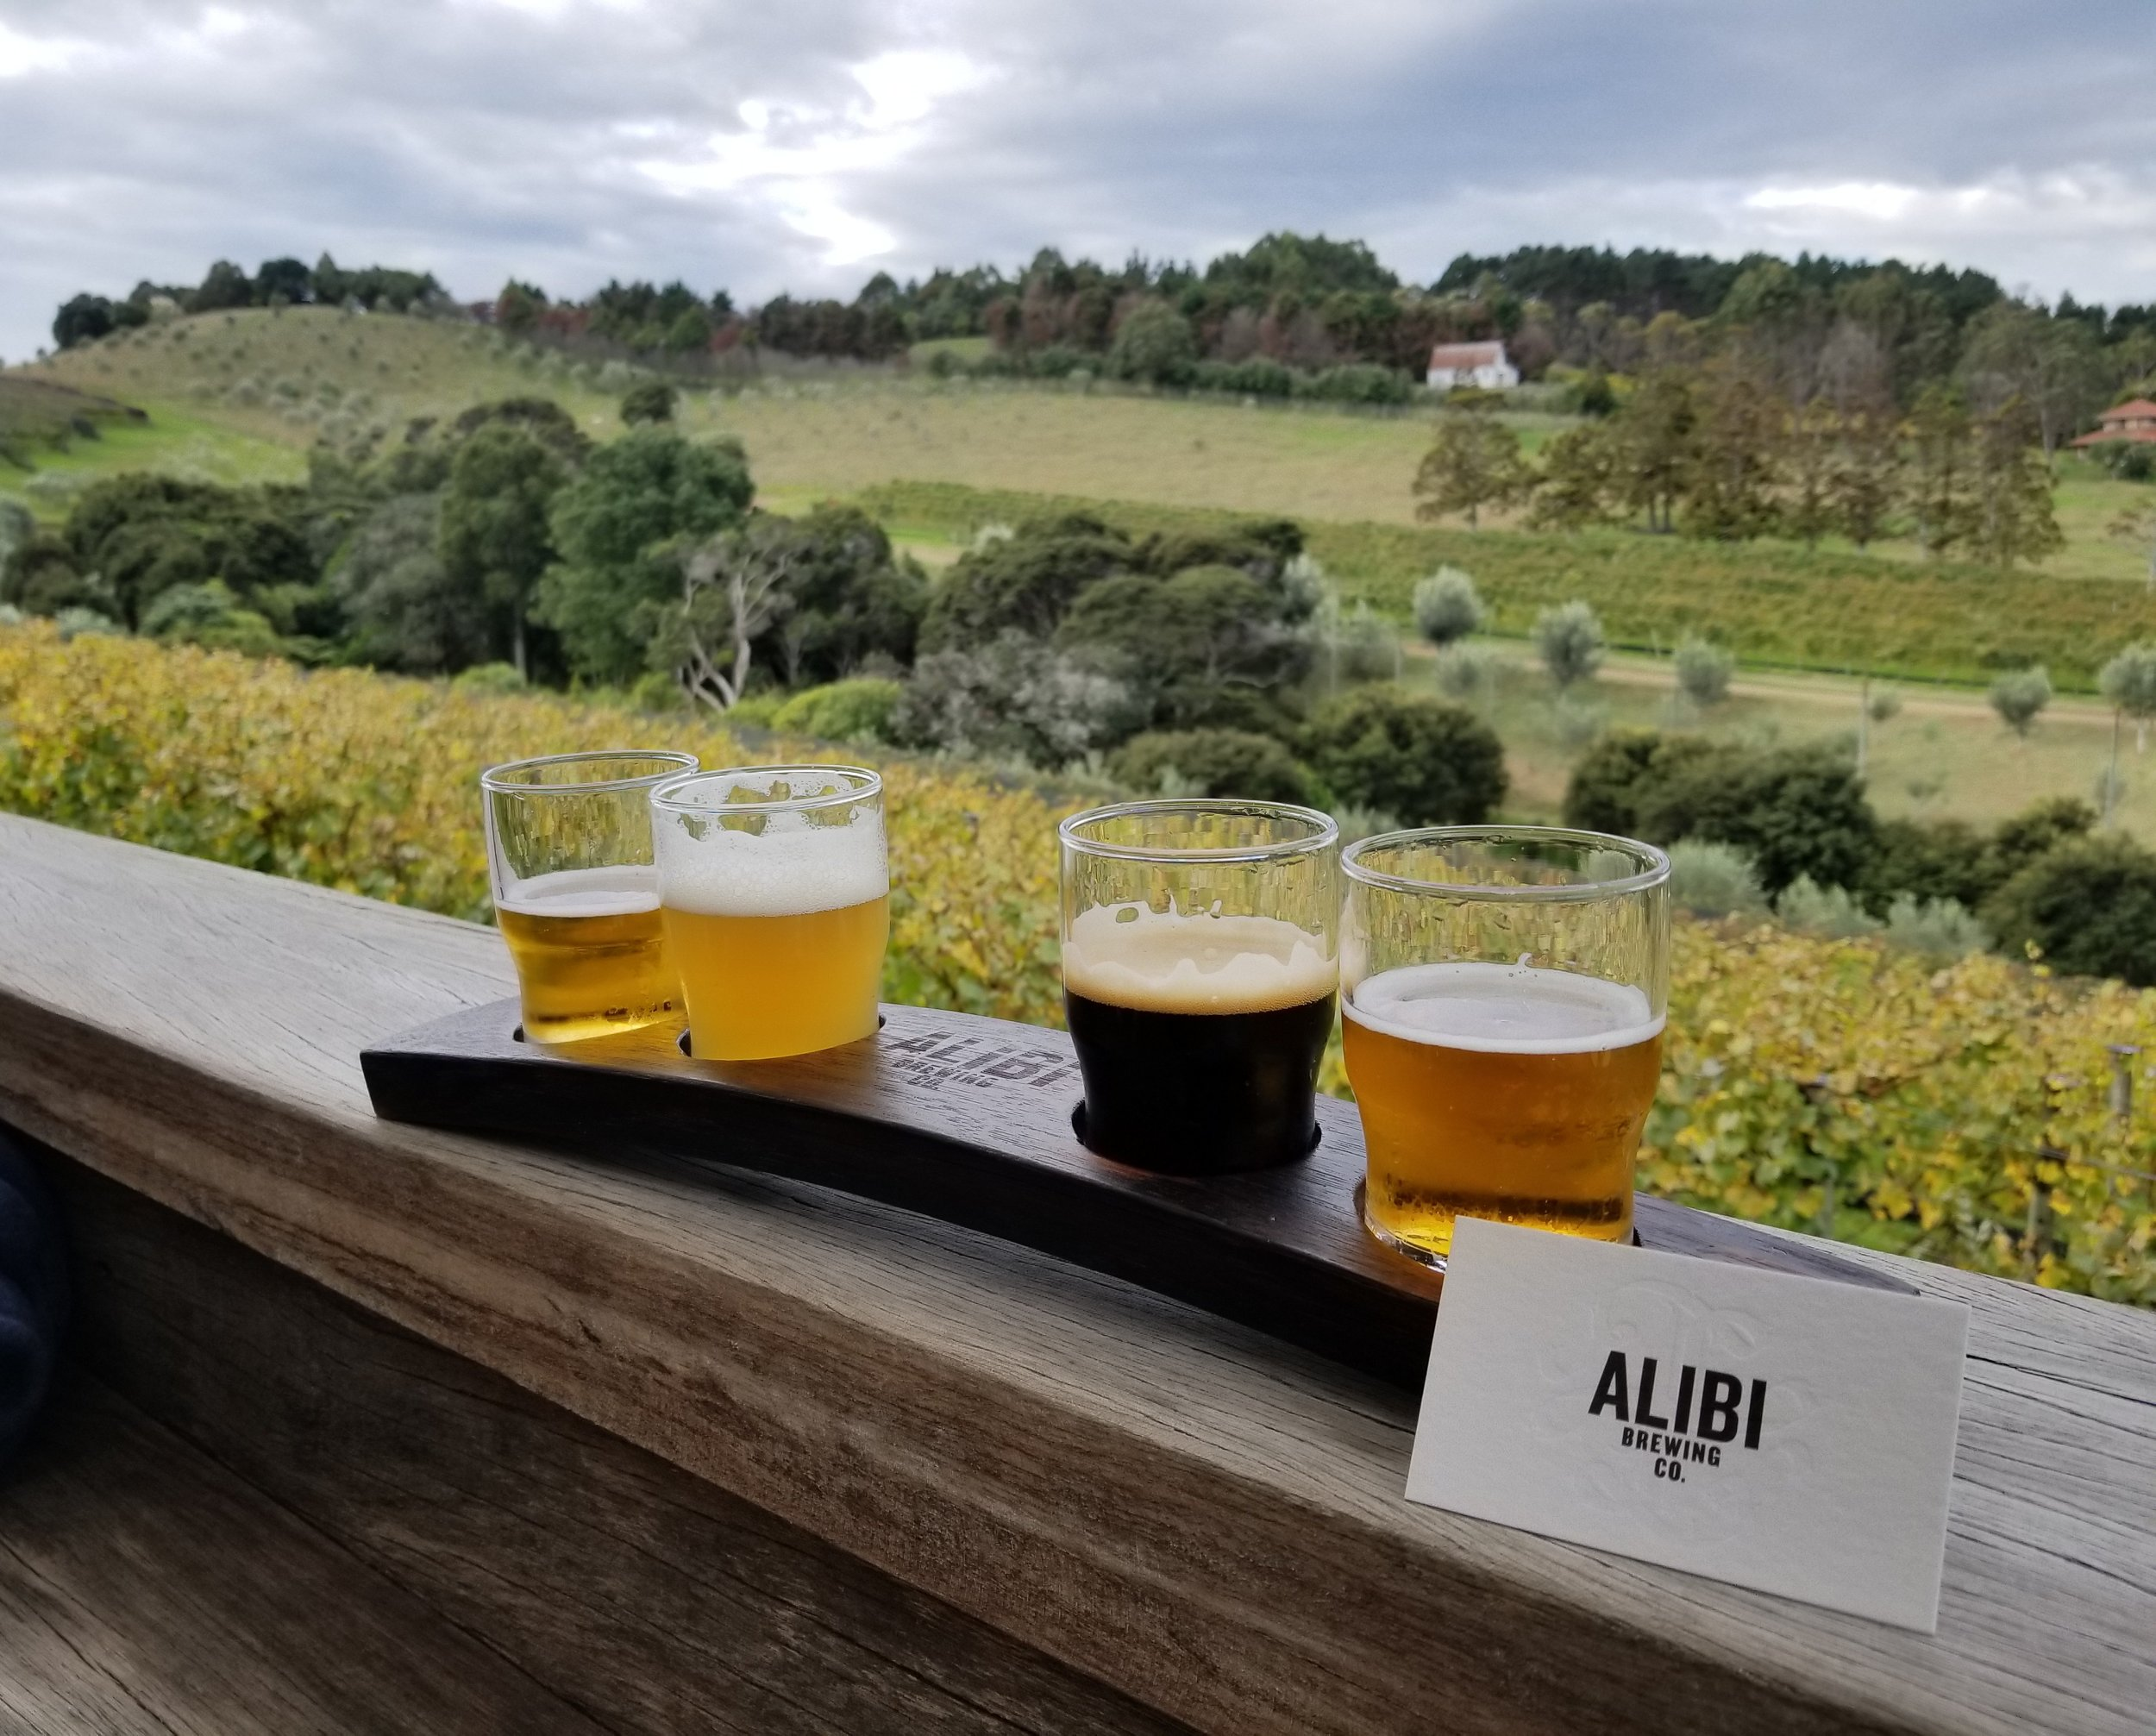 Alibi Brewing Co.